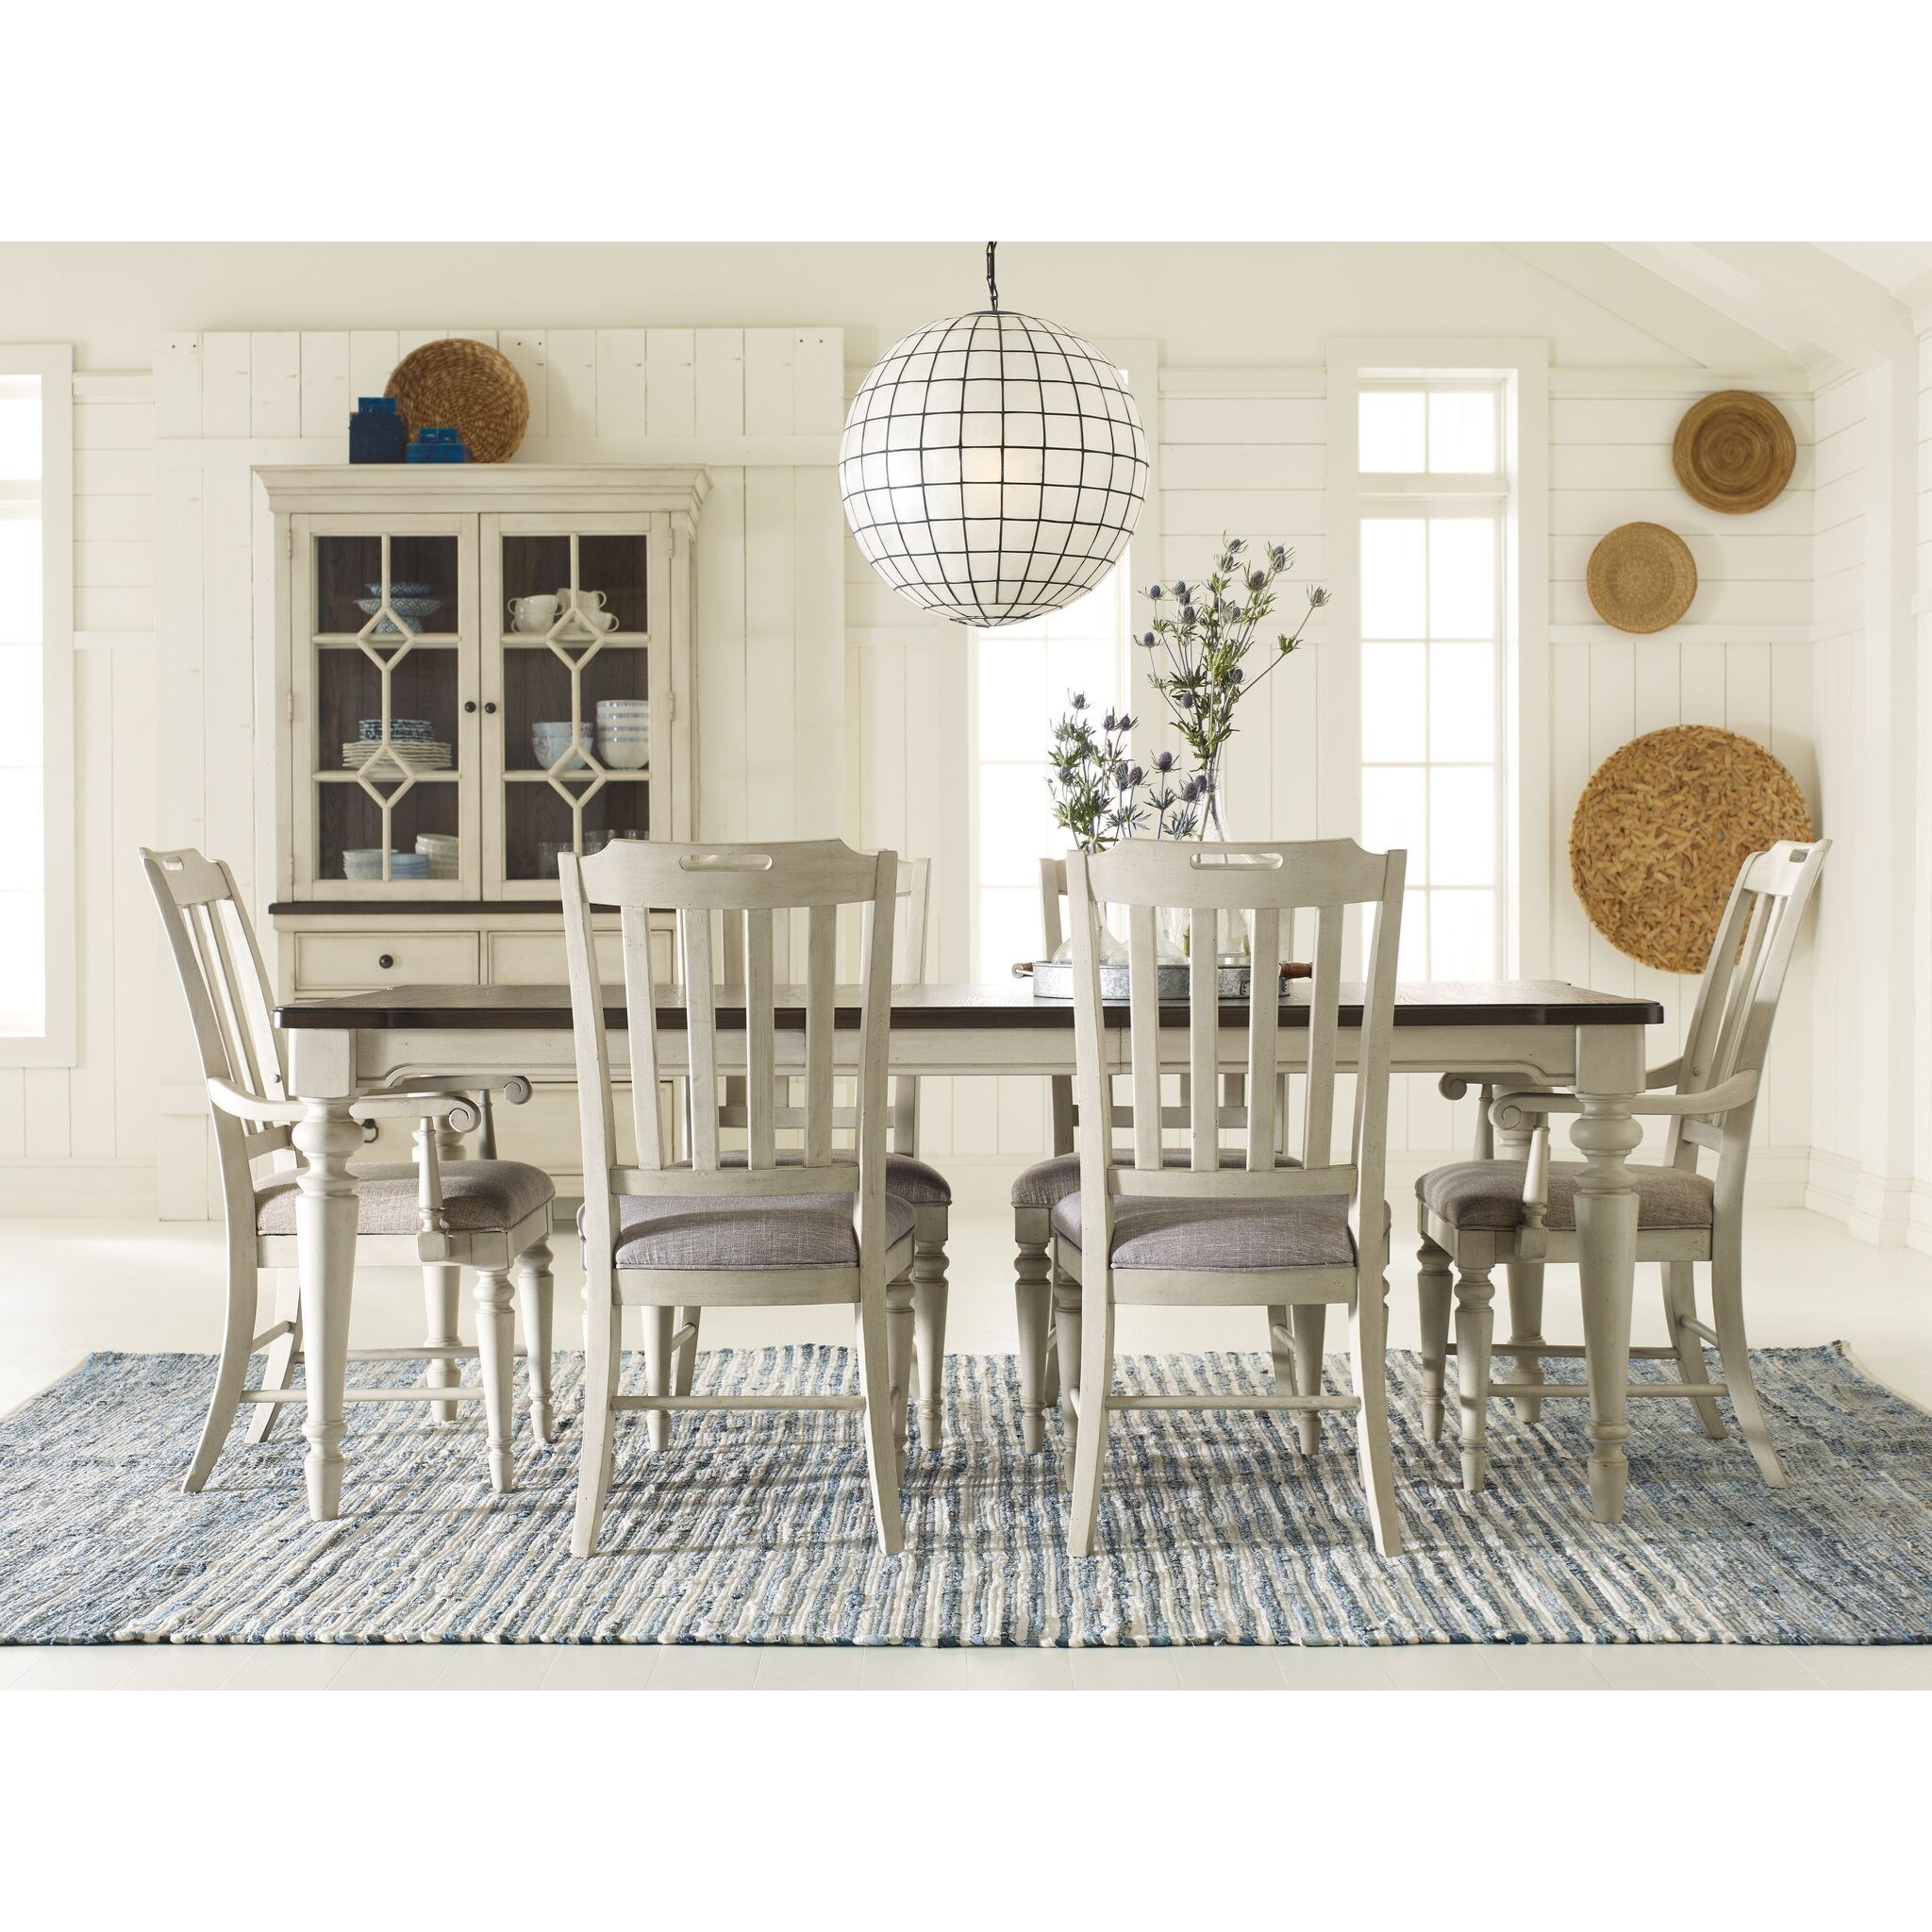 Brookhaven Formal Dining Room Group by Legacy Classic at SuperStore